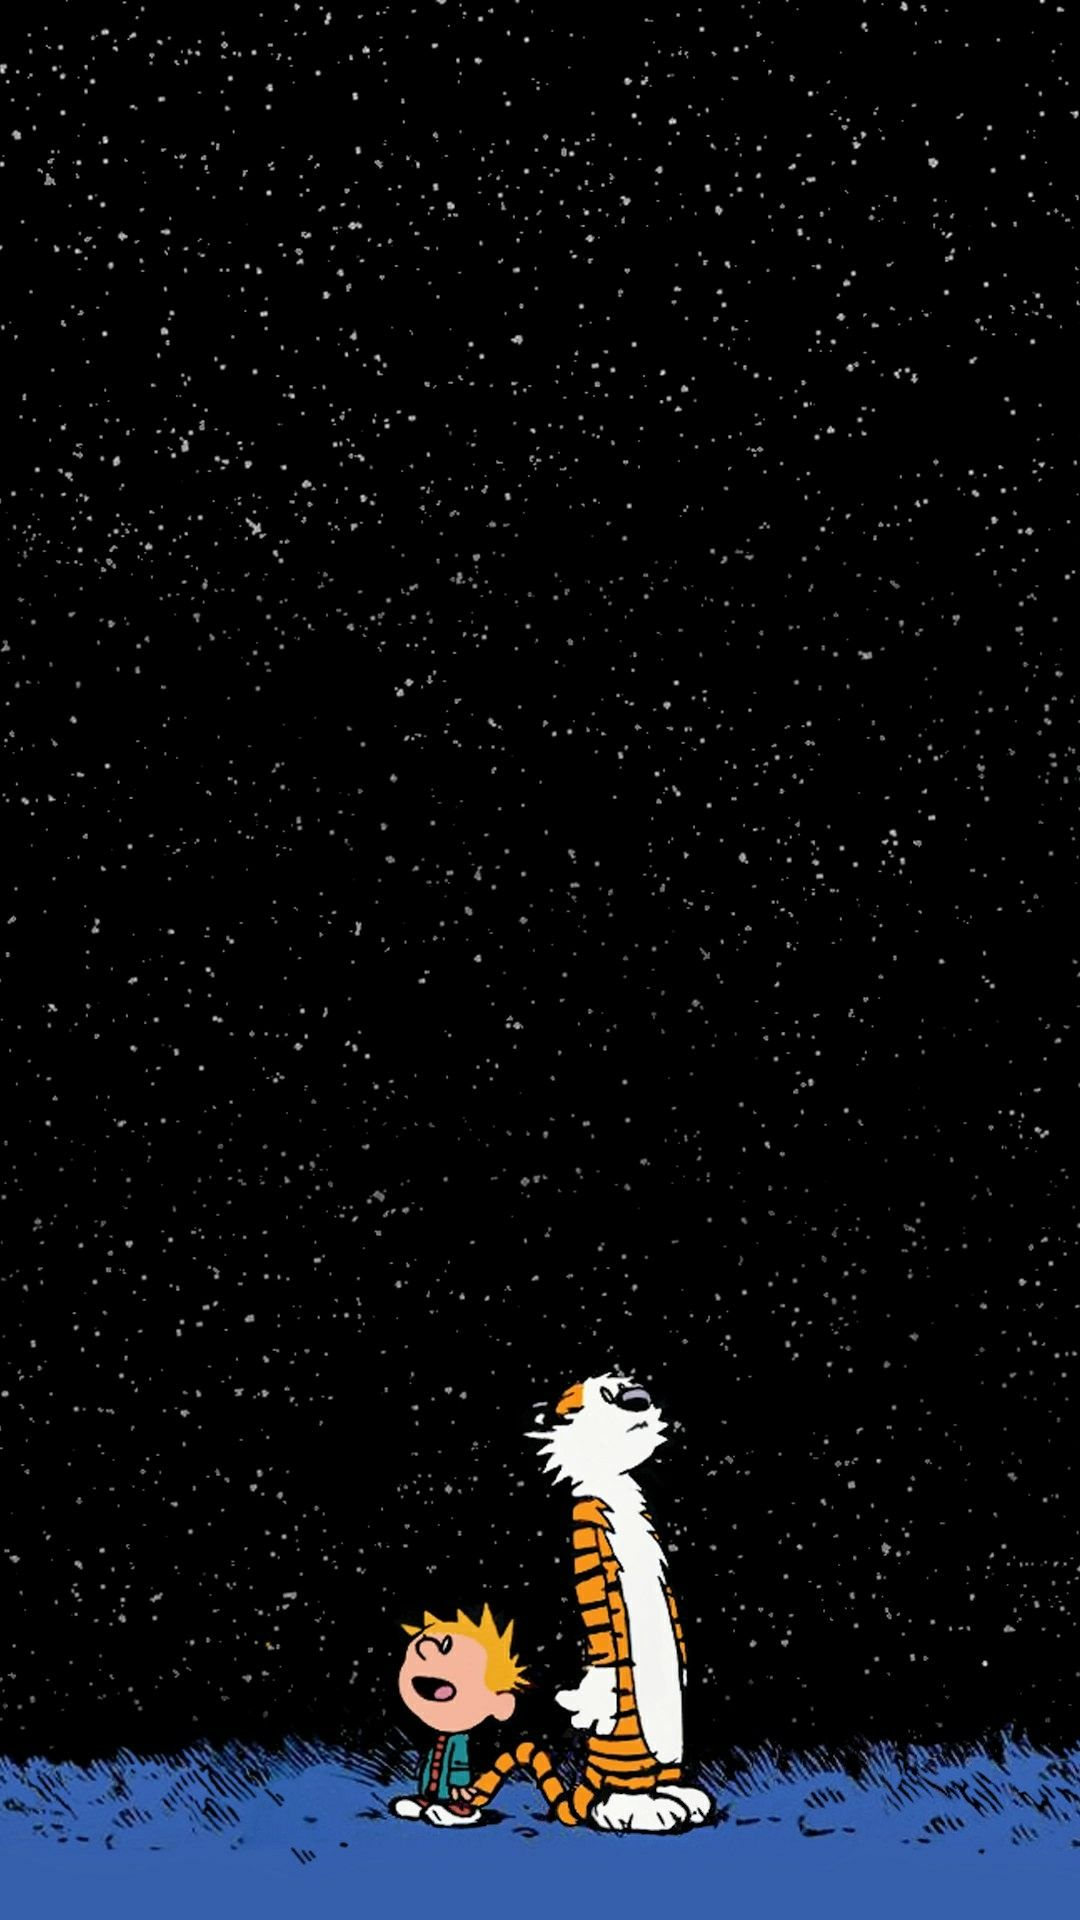 Request] Can anyone turn this Calvin and hobbes wallpaper